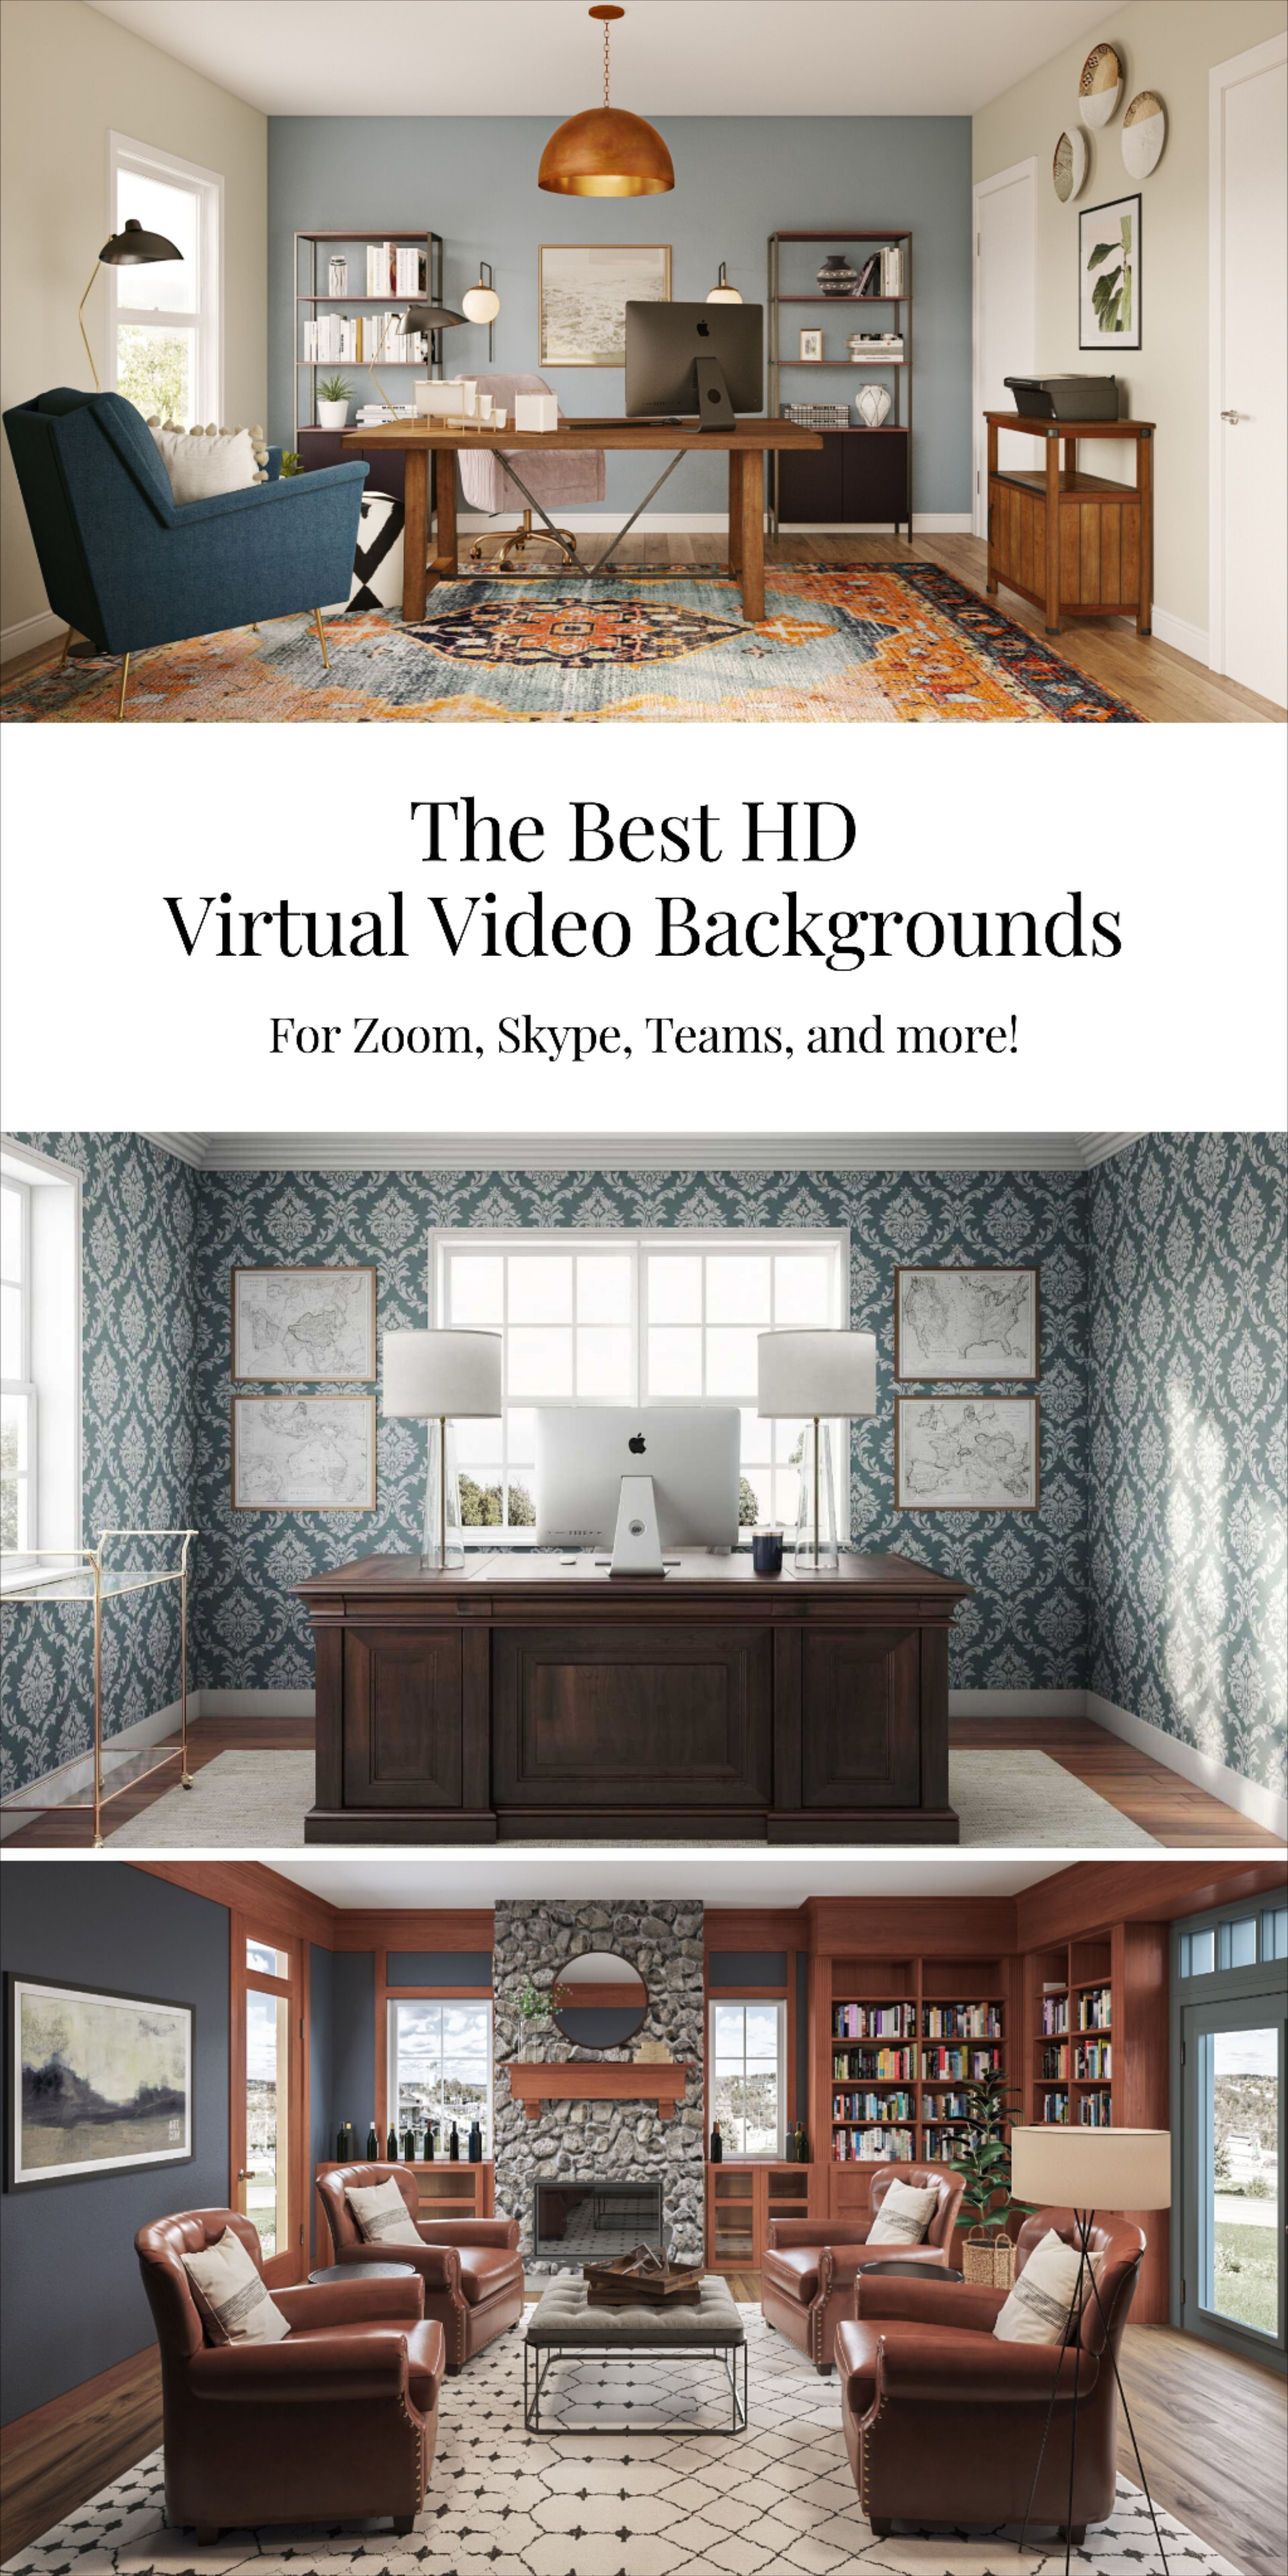 Virtual Backgrounds Zoom Backgrounds Teams Backgrounds Video Backgrounds Zoom Virtual Games Office Background Home Office Remodel